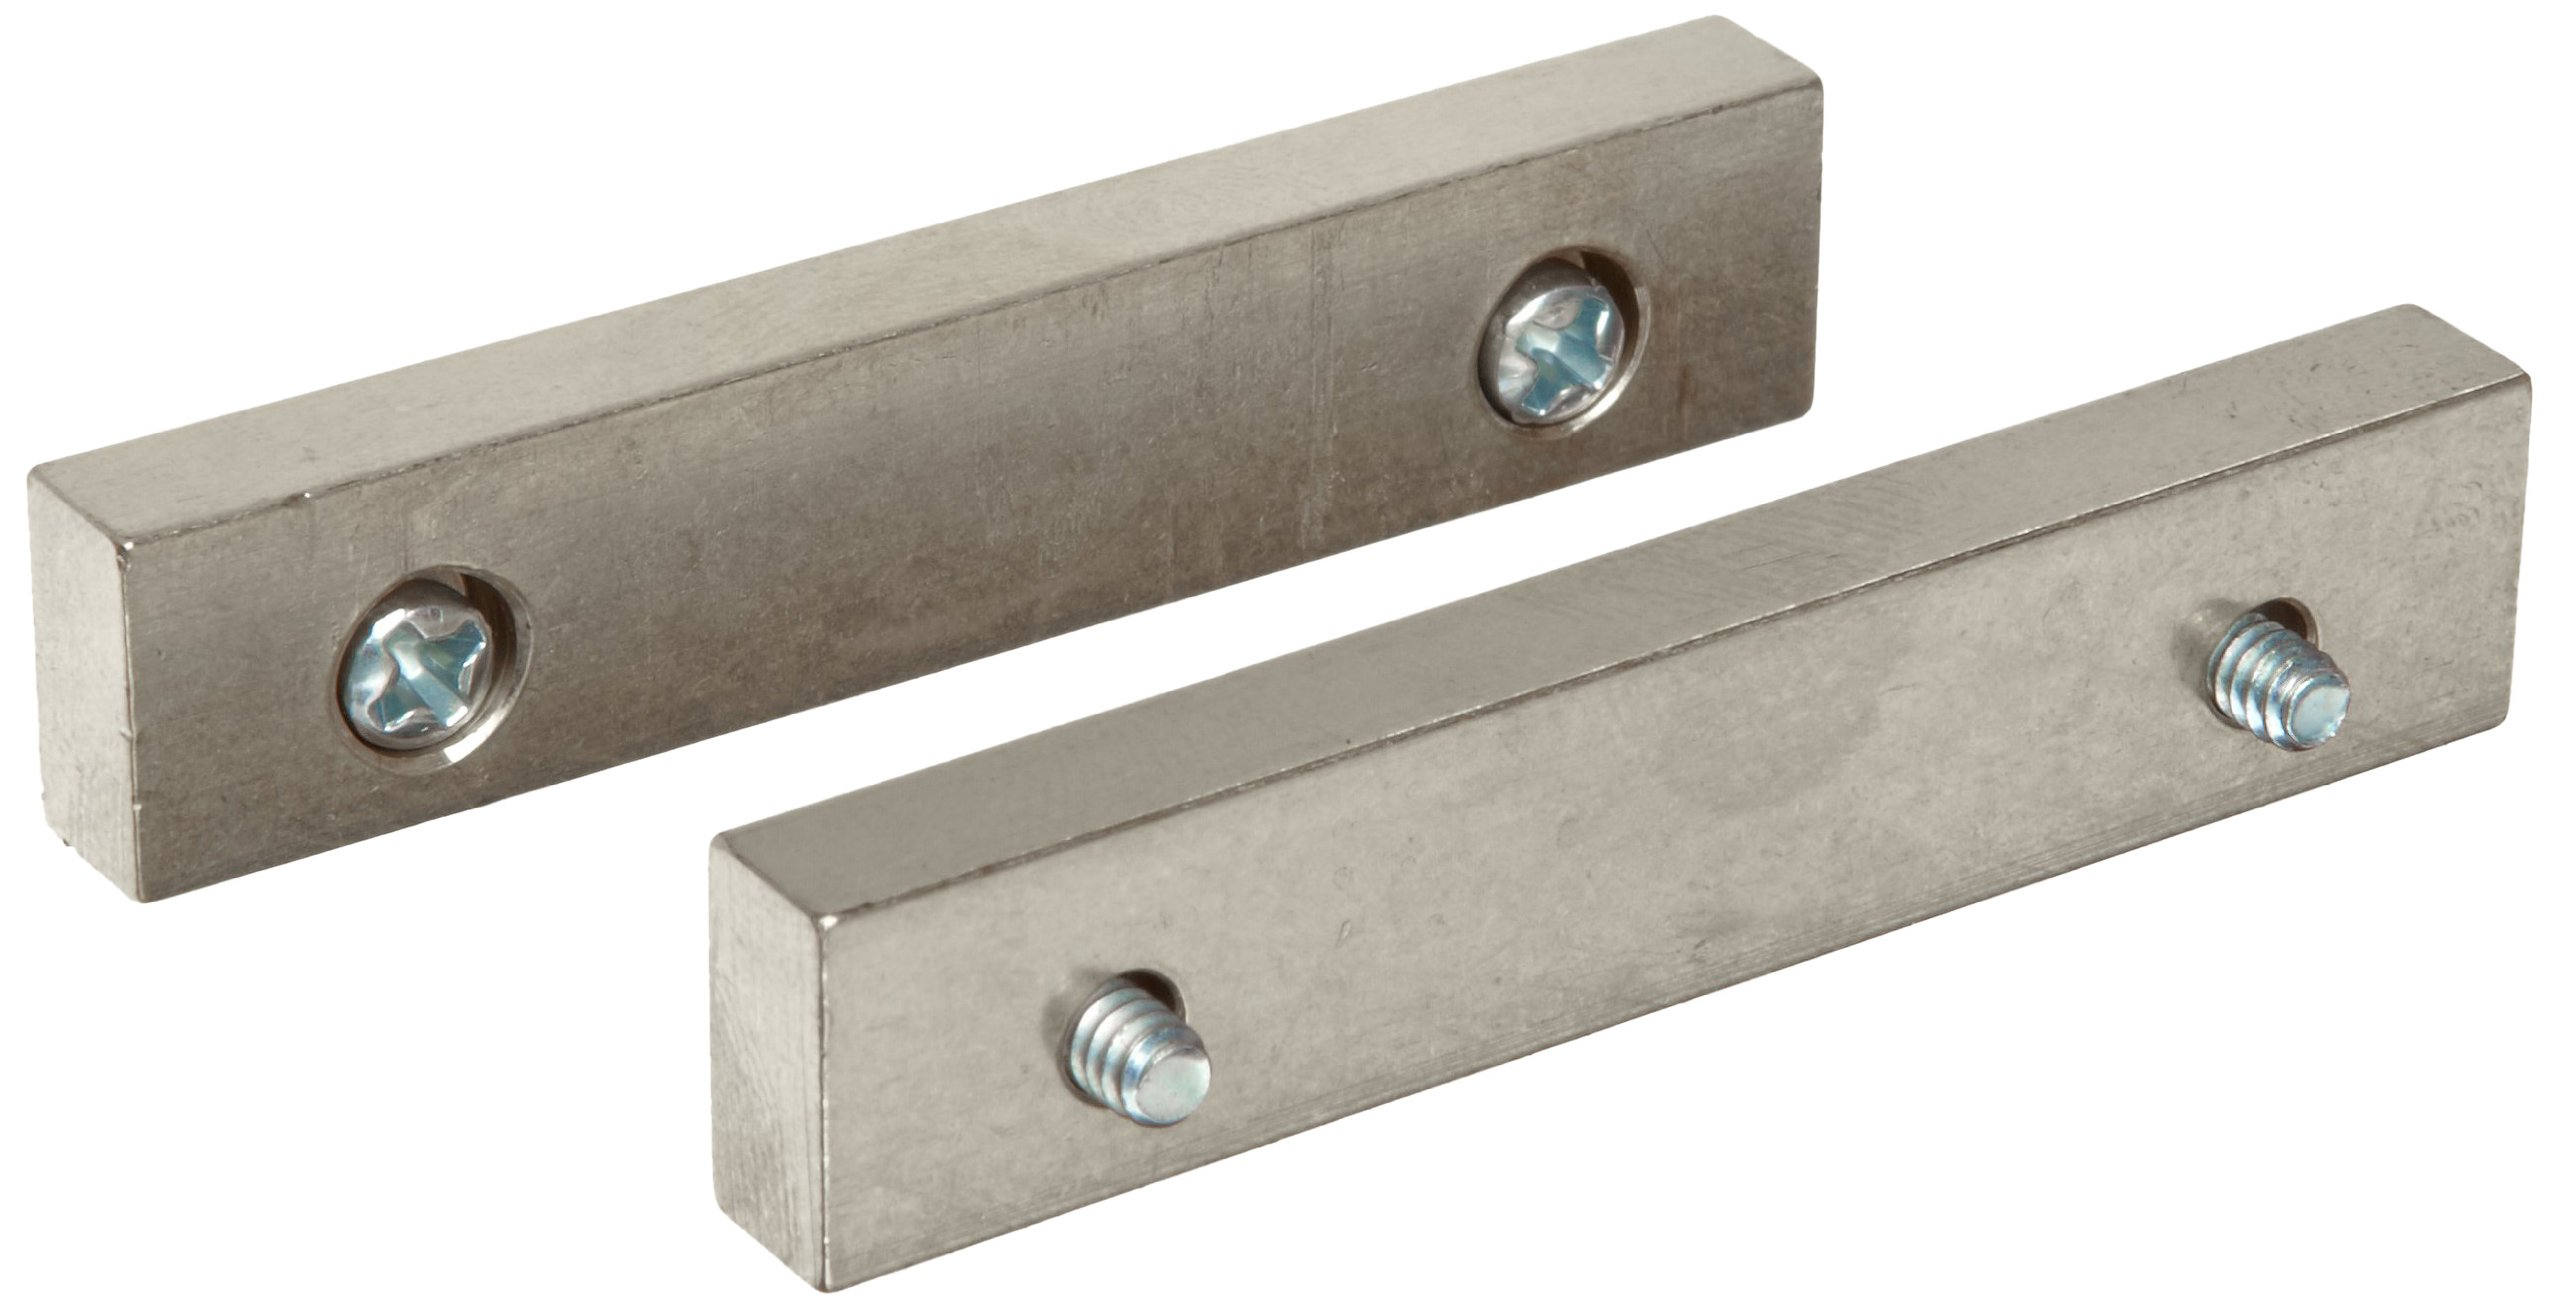 PanaVise 353 Plated Steel Jaws (pair) for